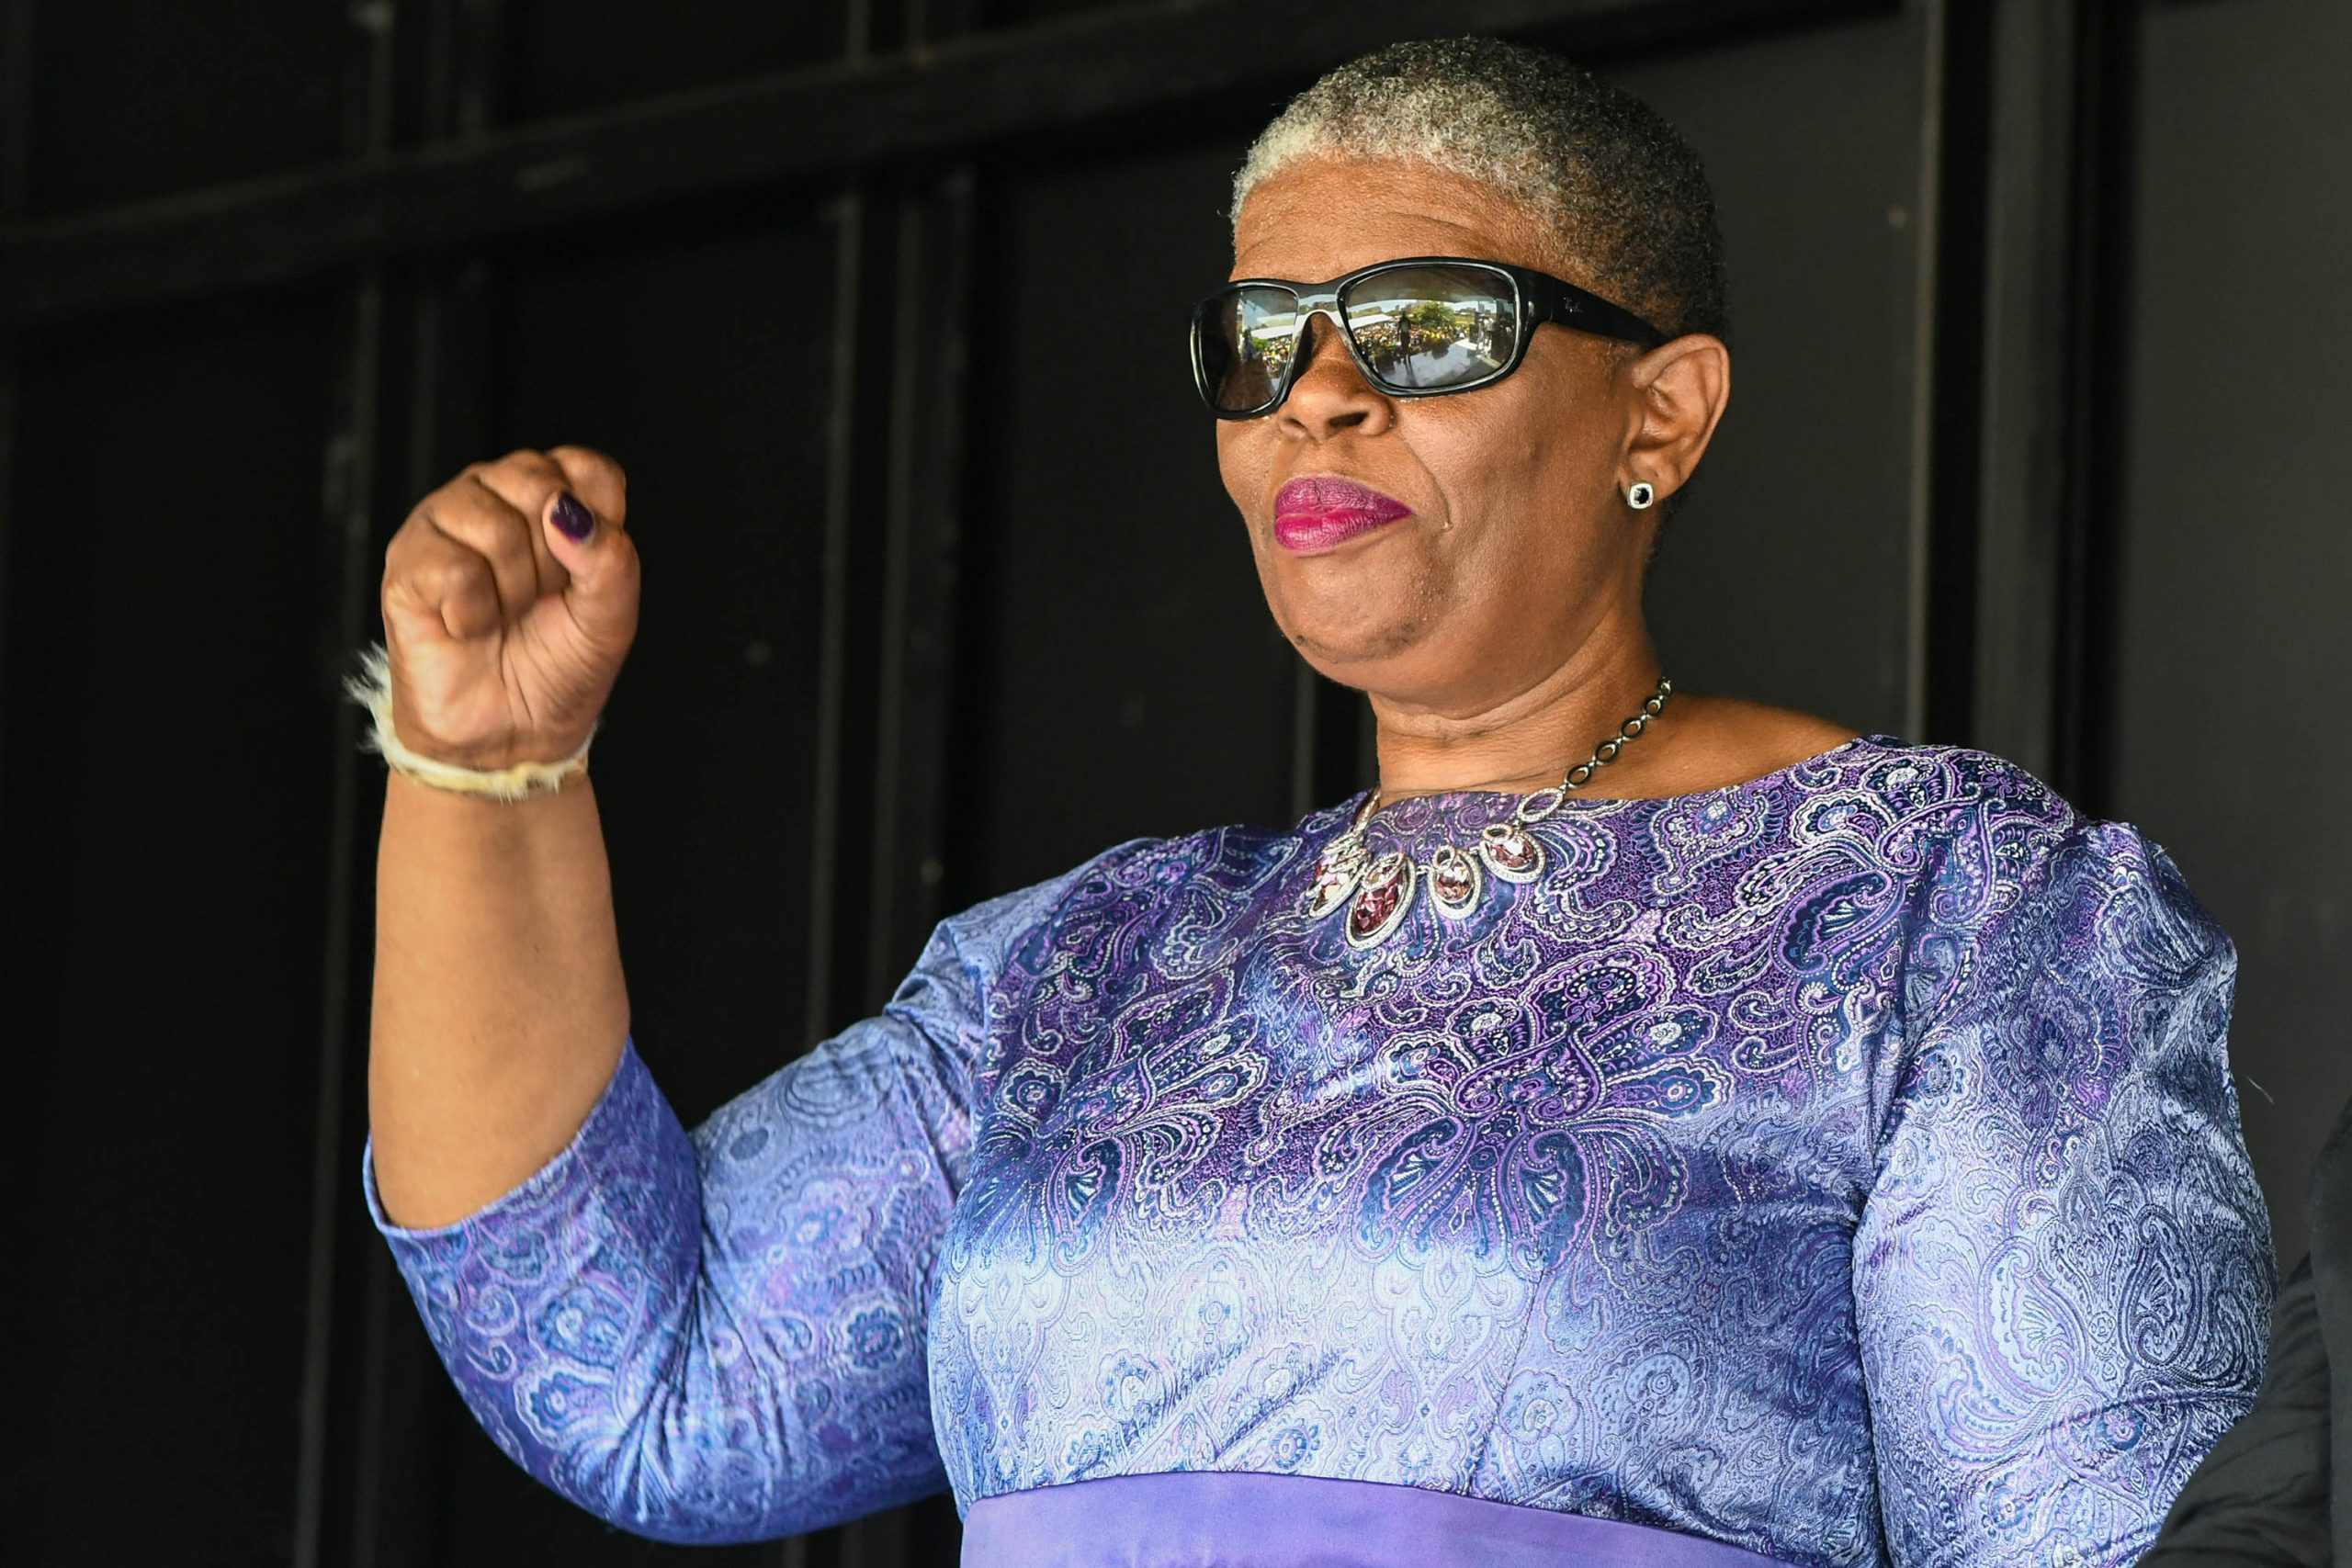 15 January 2020: Former eThekwini Mayor Zandile Gumede appears at the Durban Commercial Crimes Court on corruption charges. Despite that, she has been appointed to the KwaZulu-Natal Legislature. (Photograph by Gallo Images/ Darren Stewart)